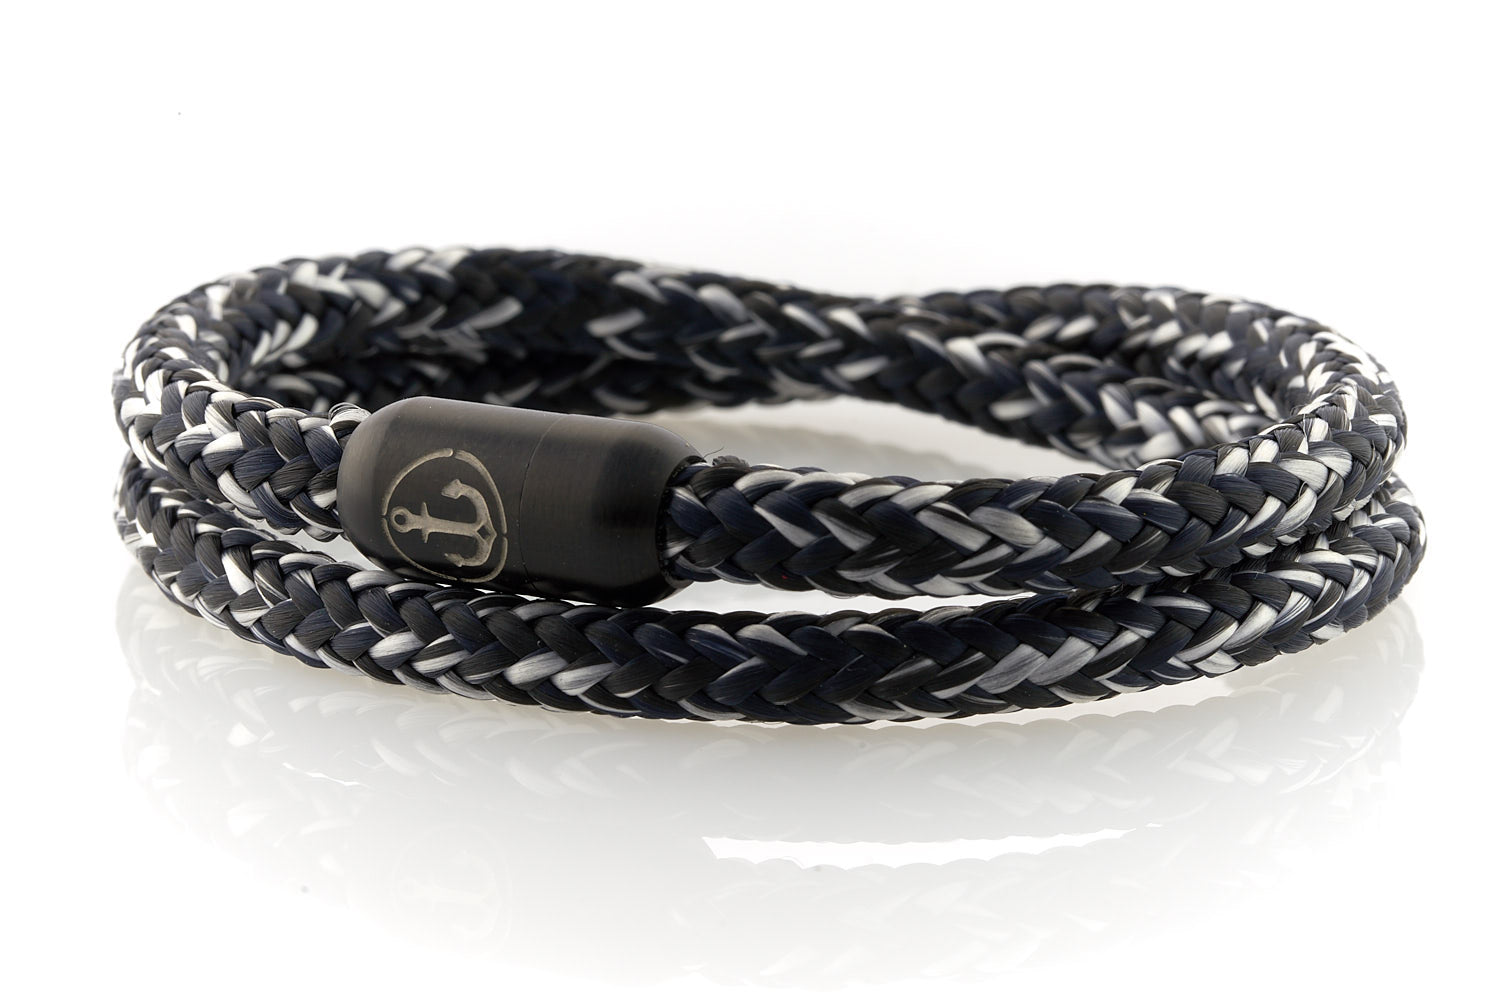 Double black and white rope bracelet for men with black stainless steel clasp with anchor engraving